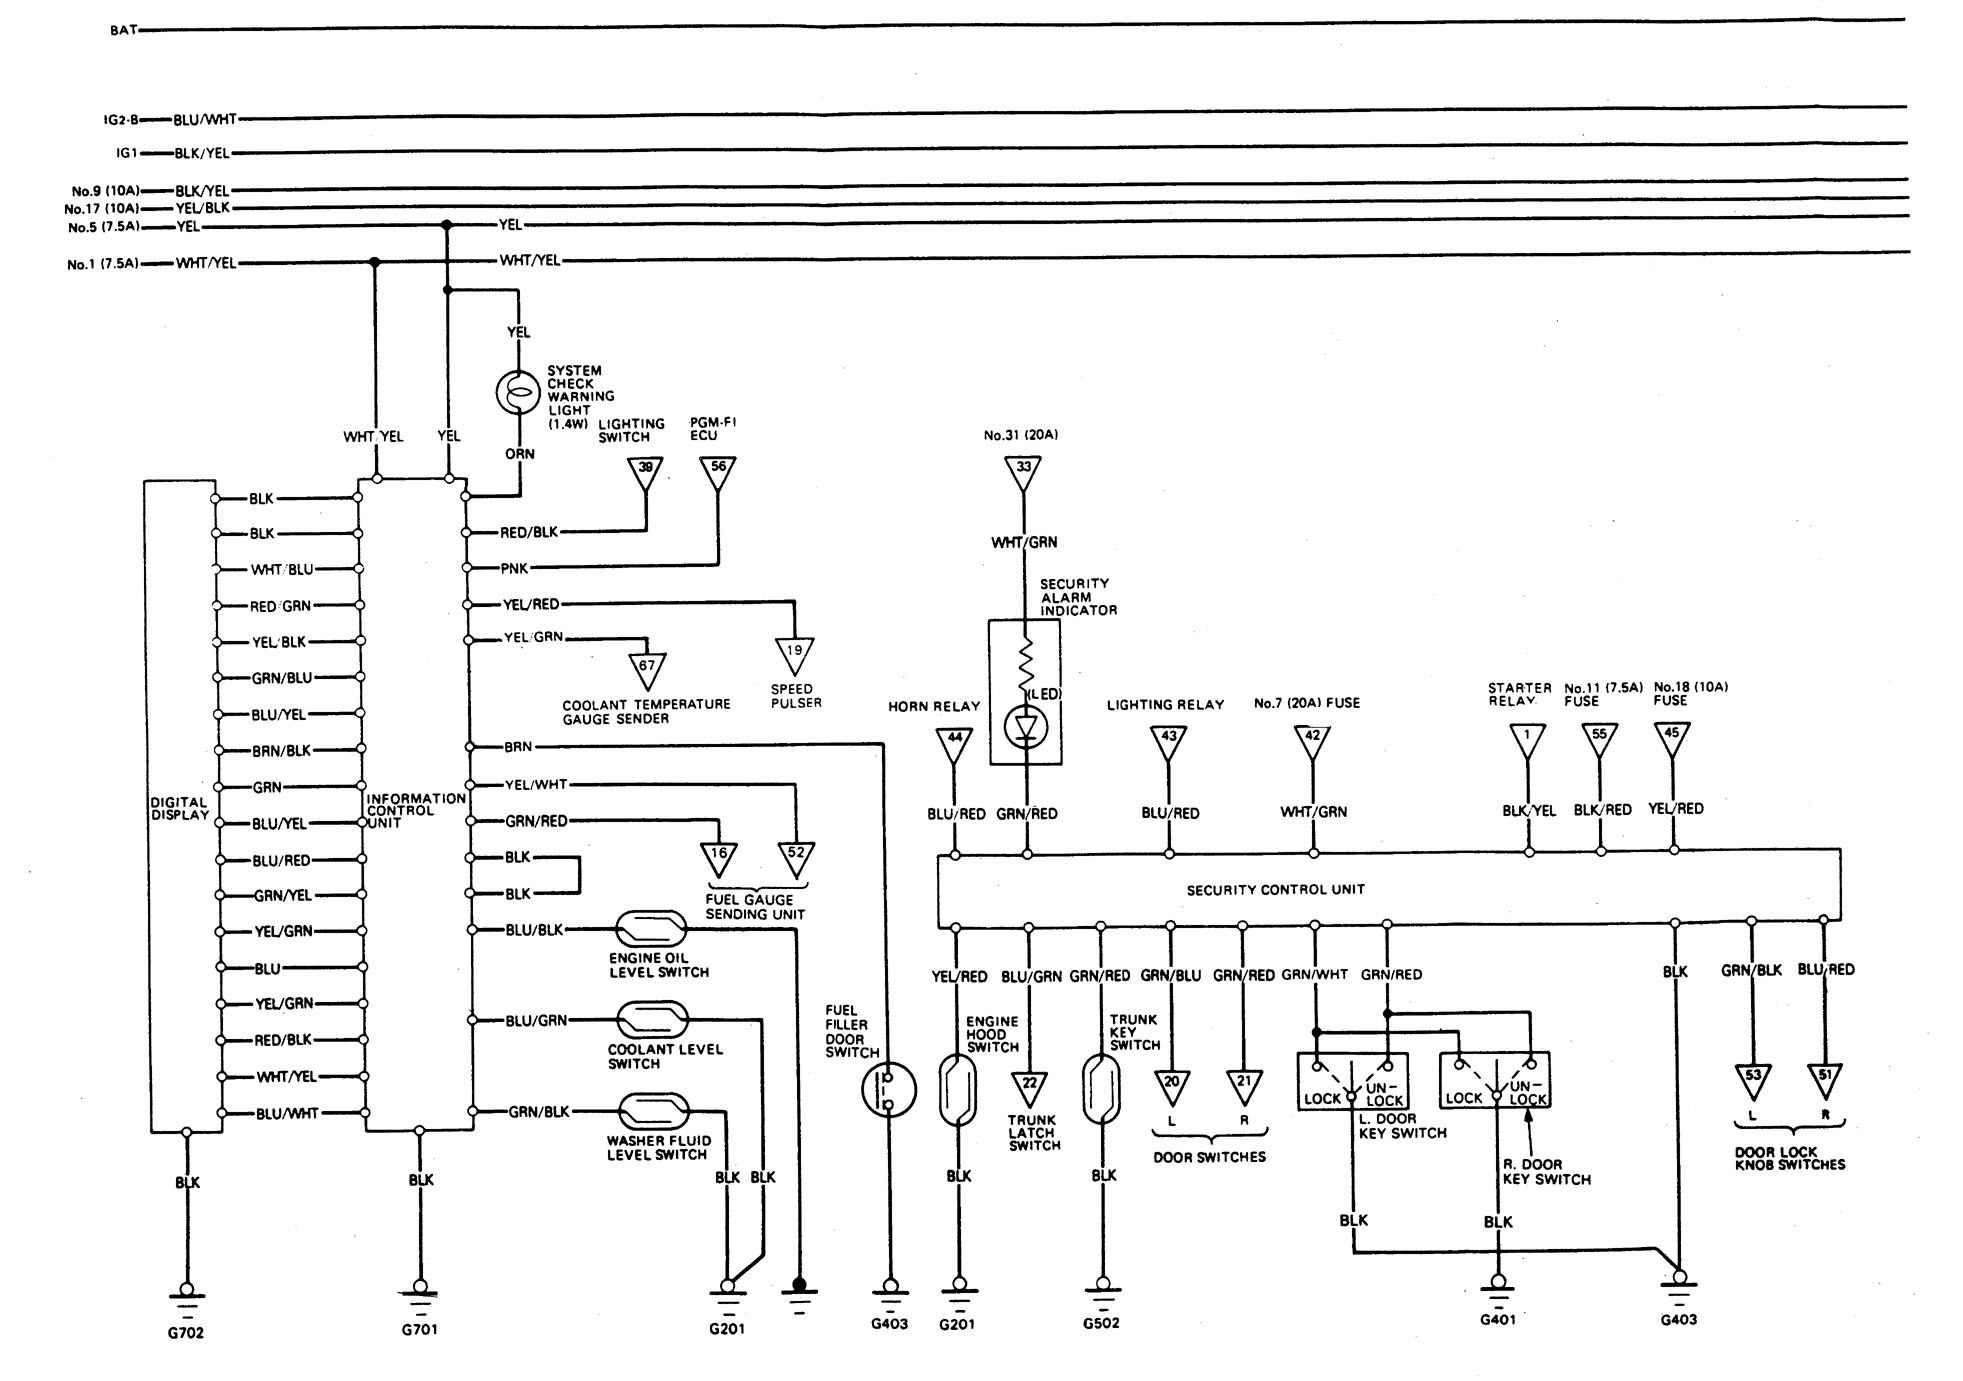 [SCHEMATICS_48IU]  Acura Legend (1989) - wiring system - security/anti-theft -  Carknowledge.info | 1989 Corvette Wiring Diagrams |  | Carknowledge.info